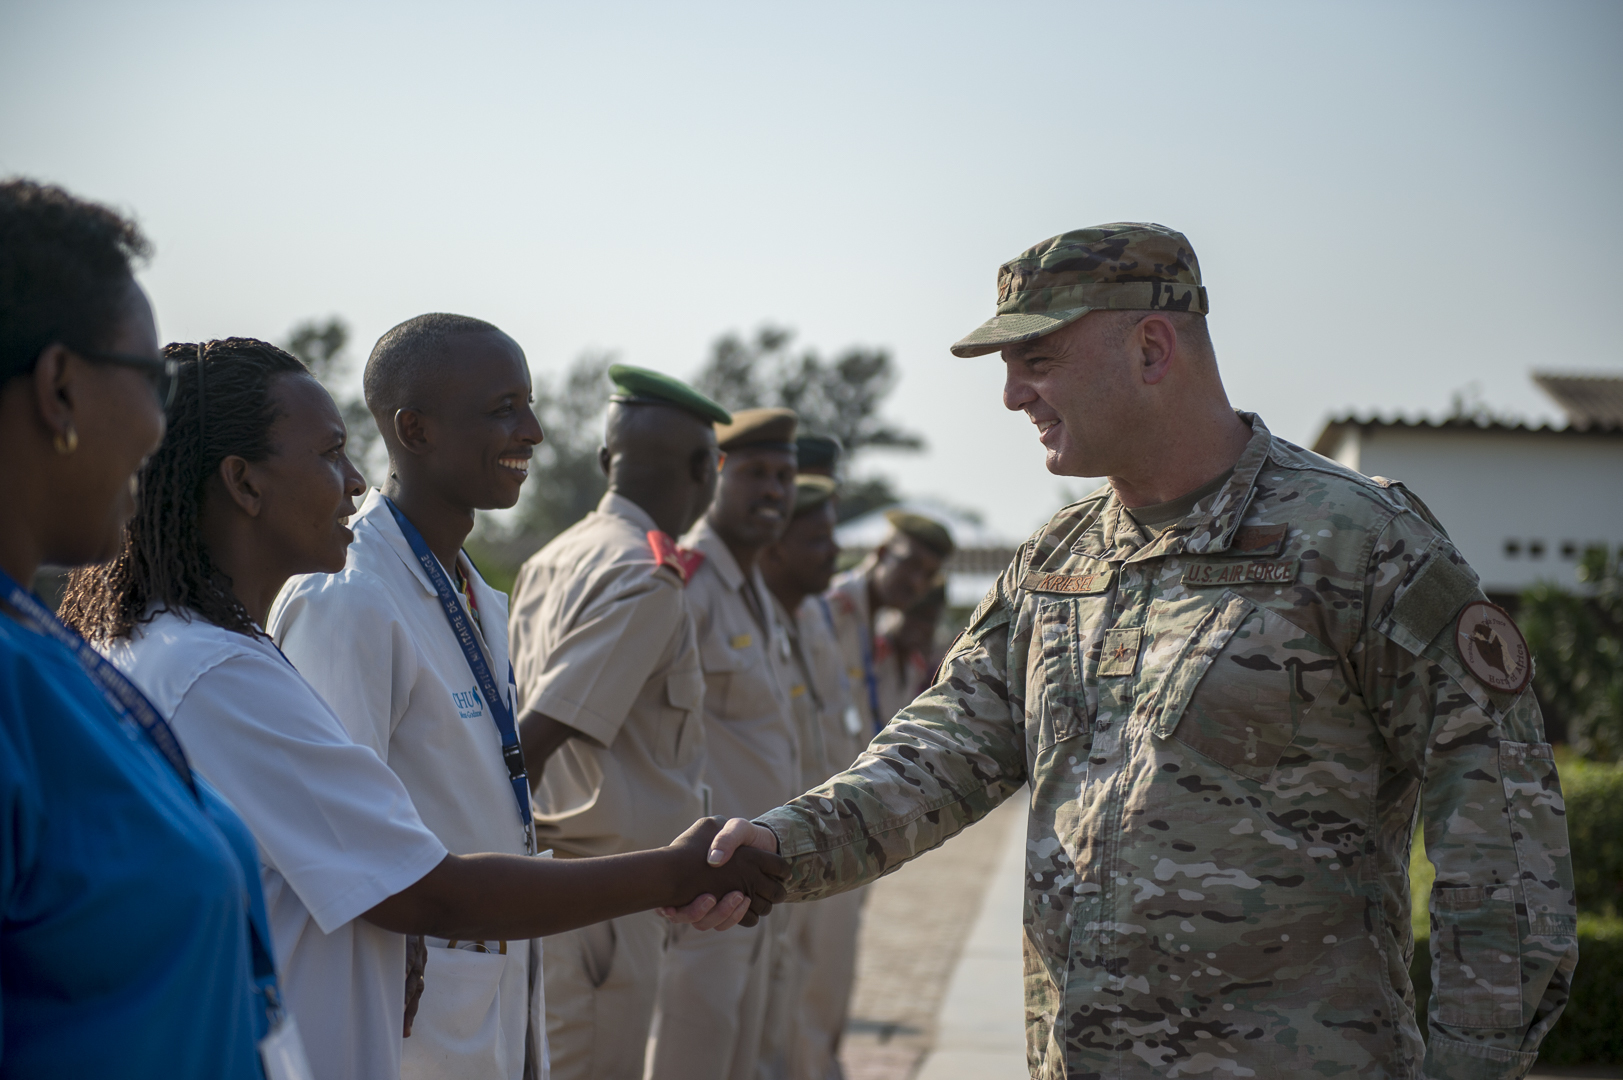 U.S. Air Force Brig. Gen. James R. Kriesel, deputy commanding general of Combined Joint Task Force-Horn of Africa, meets with doctors at Kamenge Military Hospital in Bujumbura, Burundi, July 18, 2019. The hospital has 30 specialists, 25 medical doctors and almost 250 nurses and technicians, and relies on medical and information exchanges with partner nations, including the United States, to stay ahead of the spread of Ebola. (U.S. Air Force Photo by Senior Airman Codie Trimble)